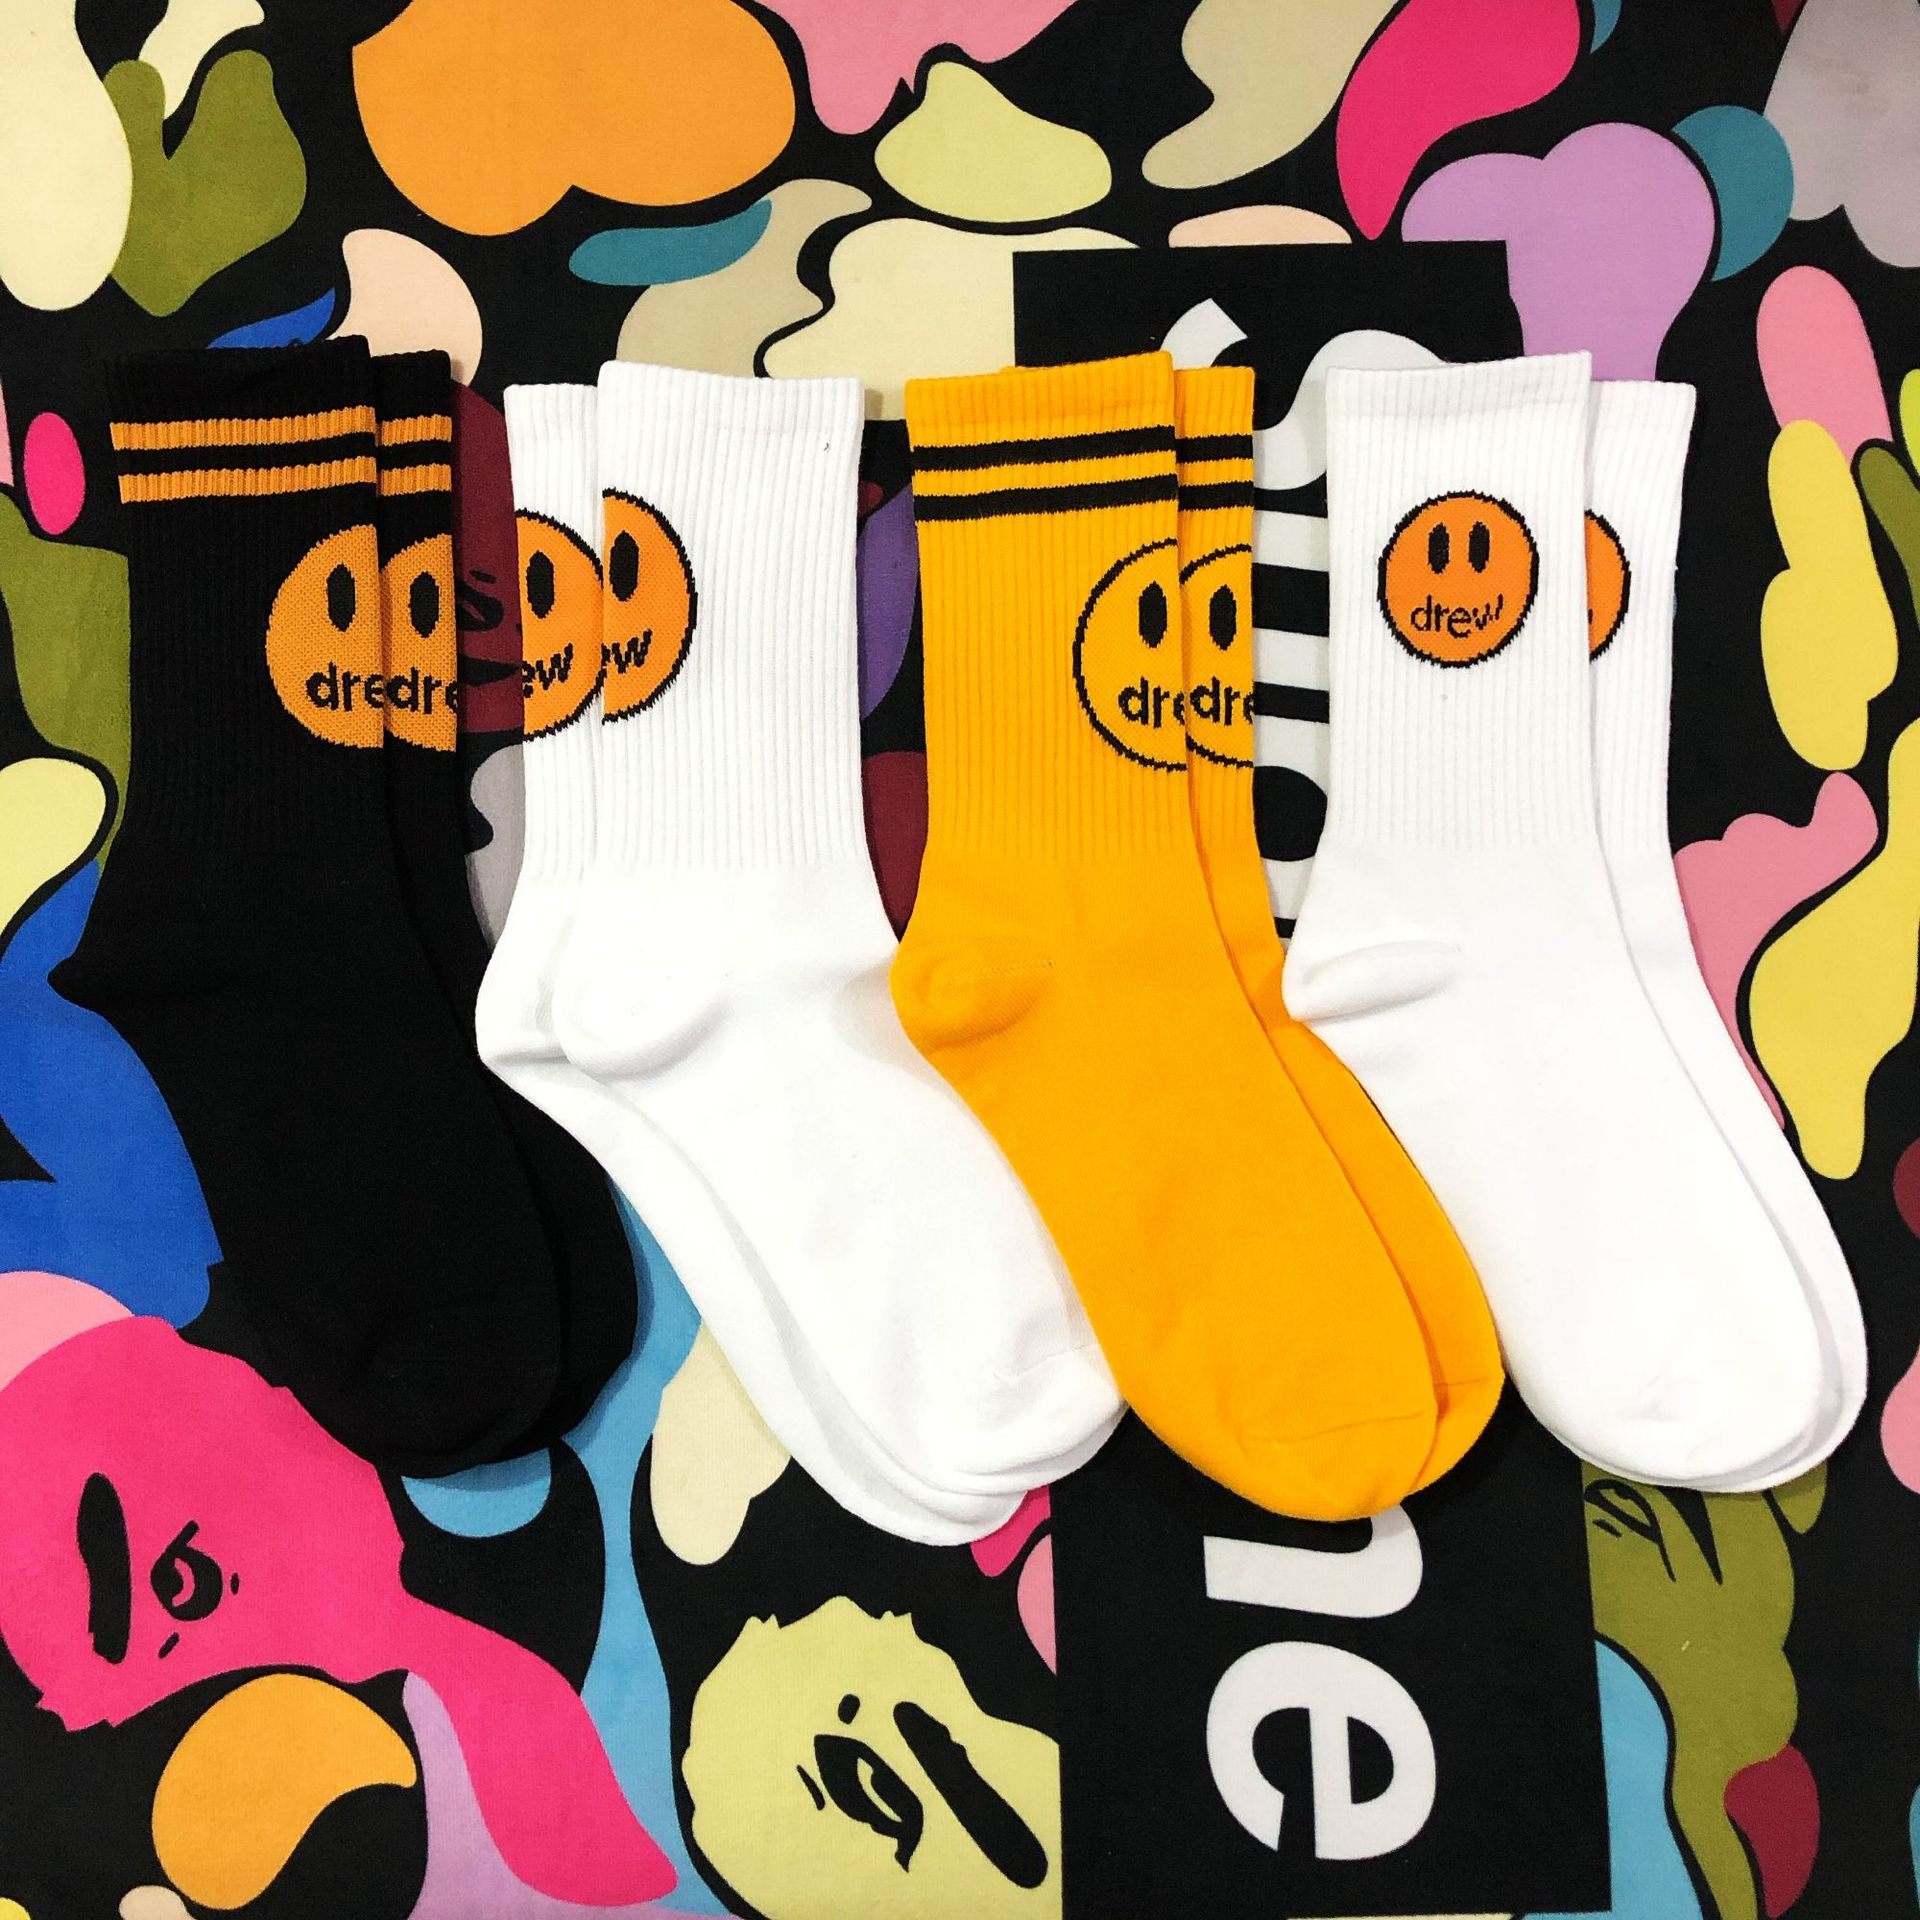 Adult Mid Calf Crew Socks Justin Bieber JB JBiebs Sox Drew Smile Face Drew House Drews Collection New Logo Fashion Wear Brand 20